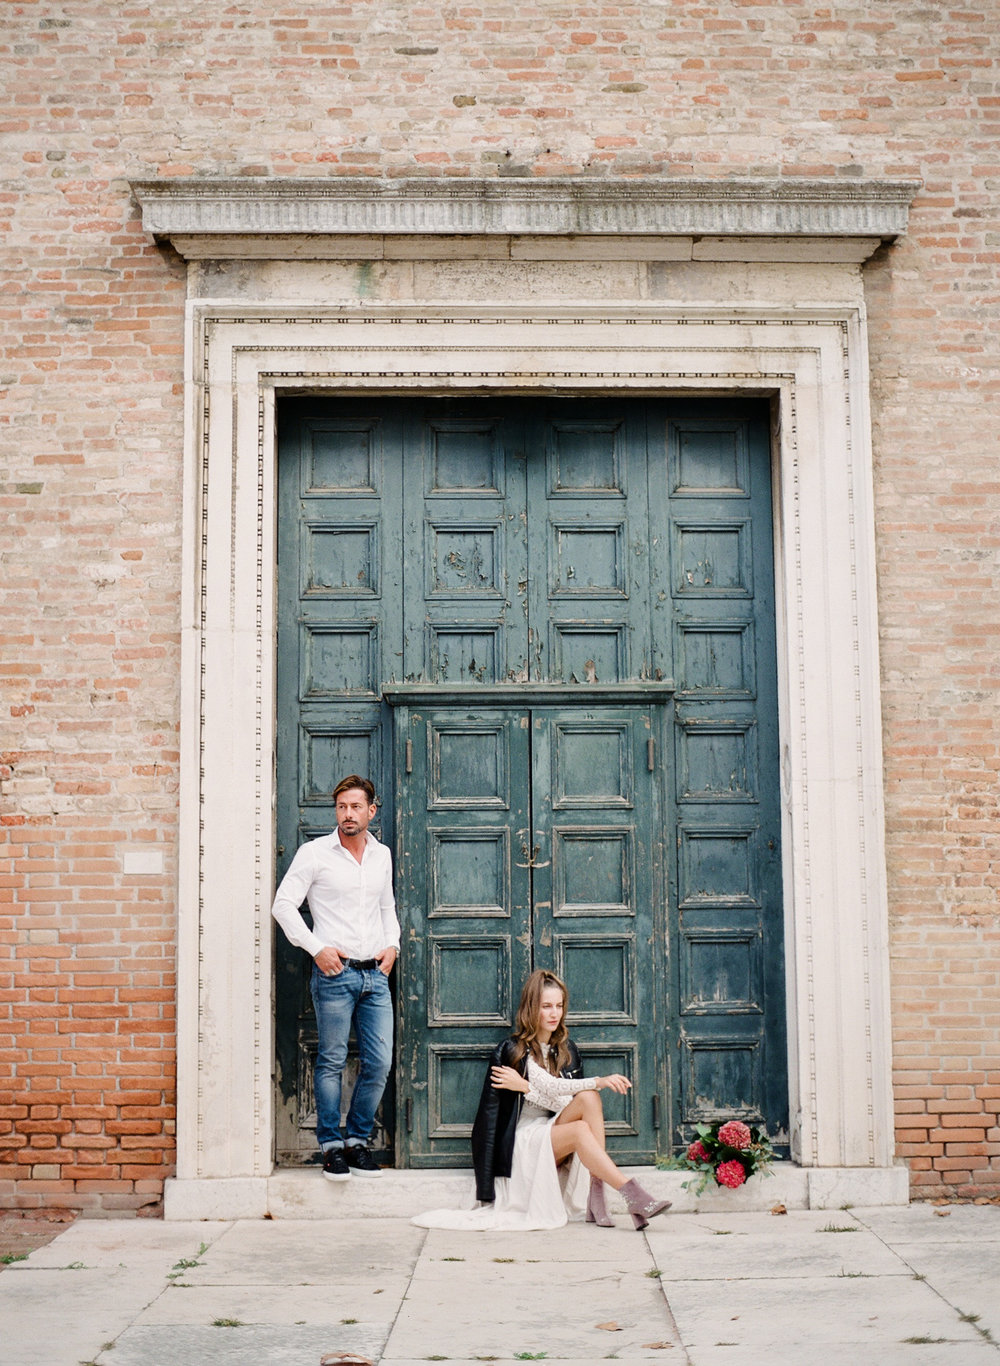 34 Venice Italy Photographer Wedding.jpg